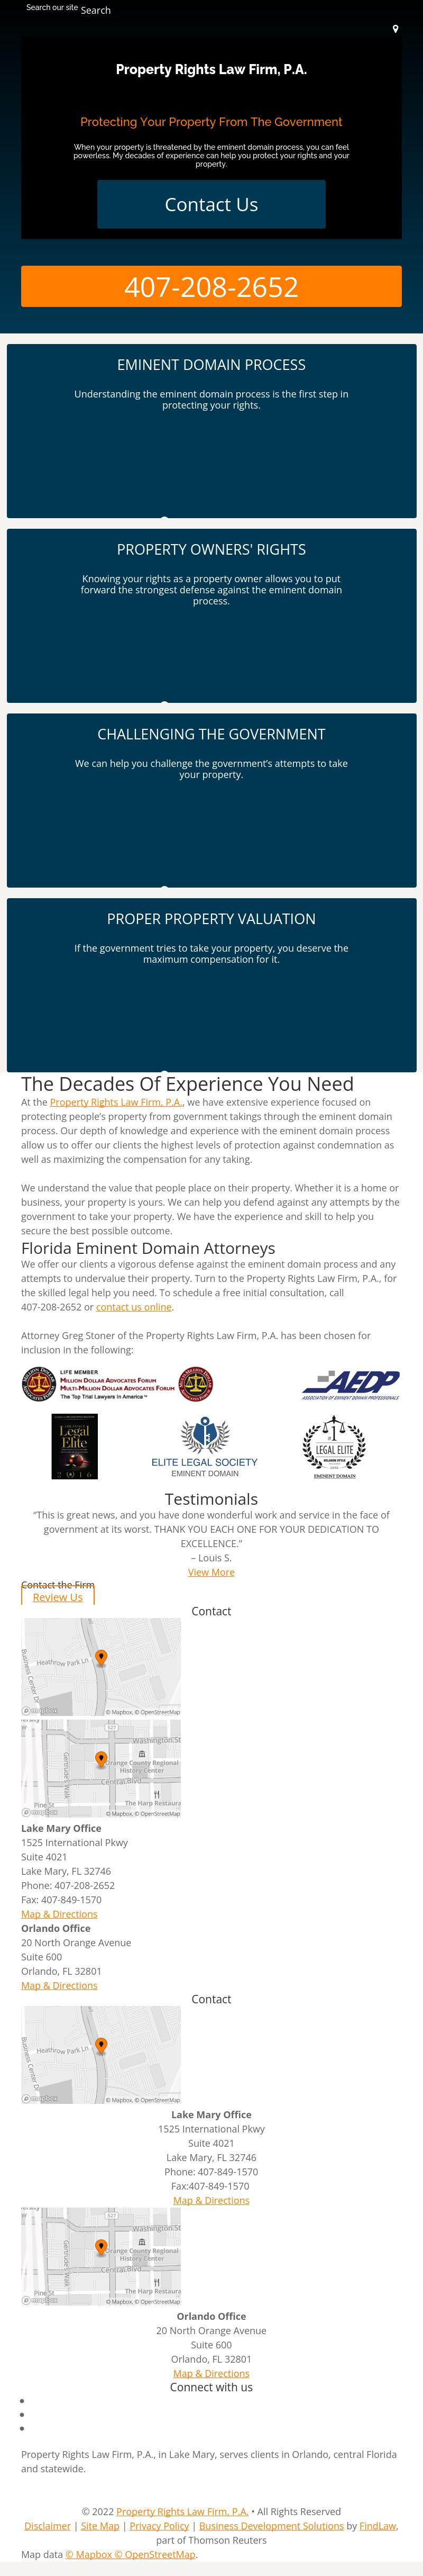 Property Rights Law Firm, P.A. - Orlando FL Lawyers